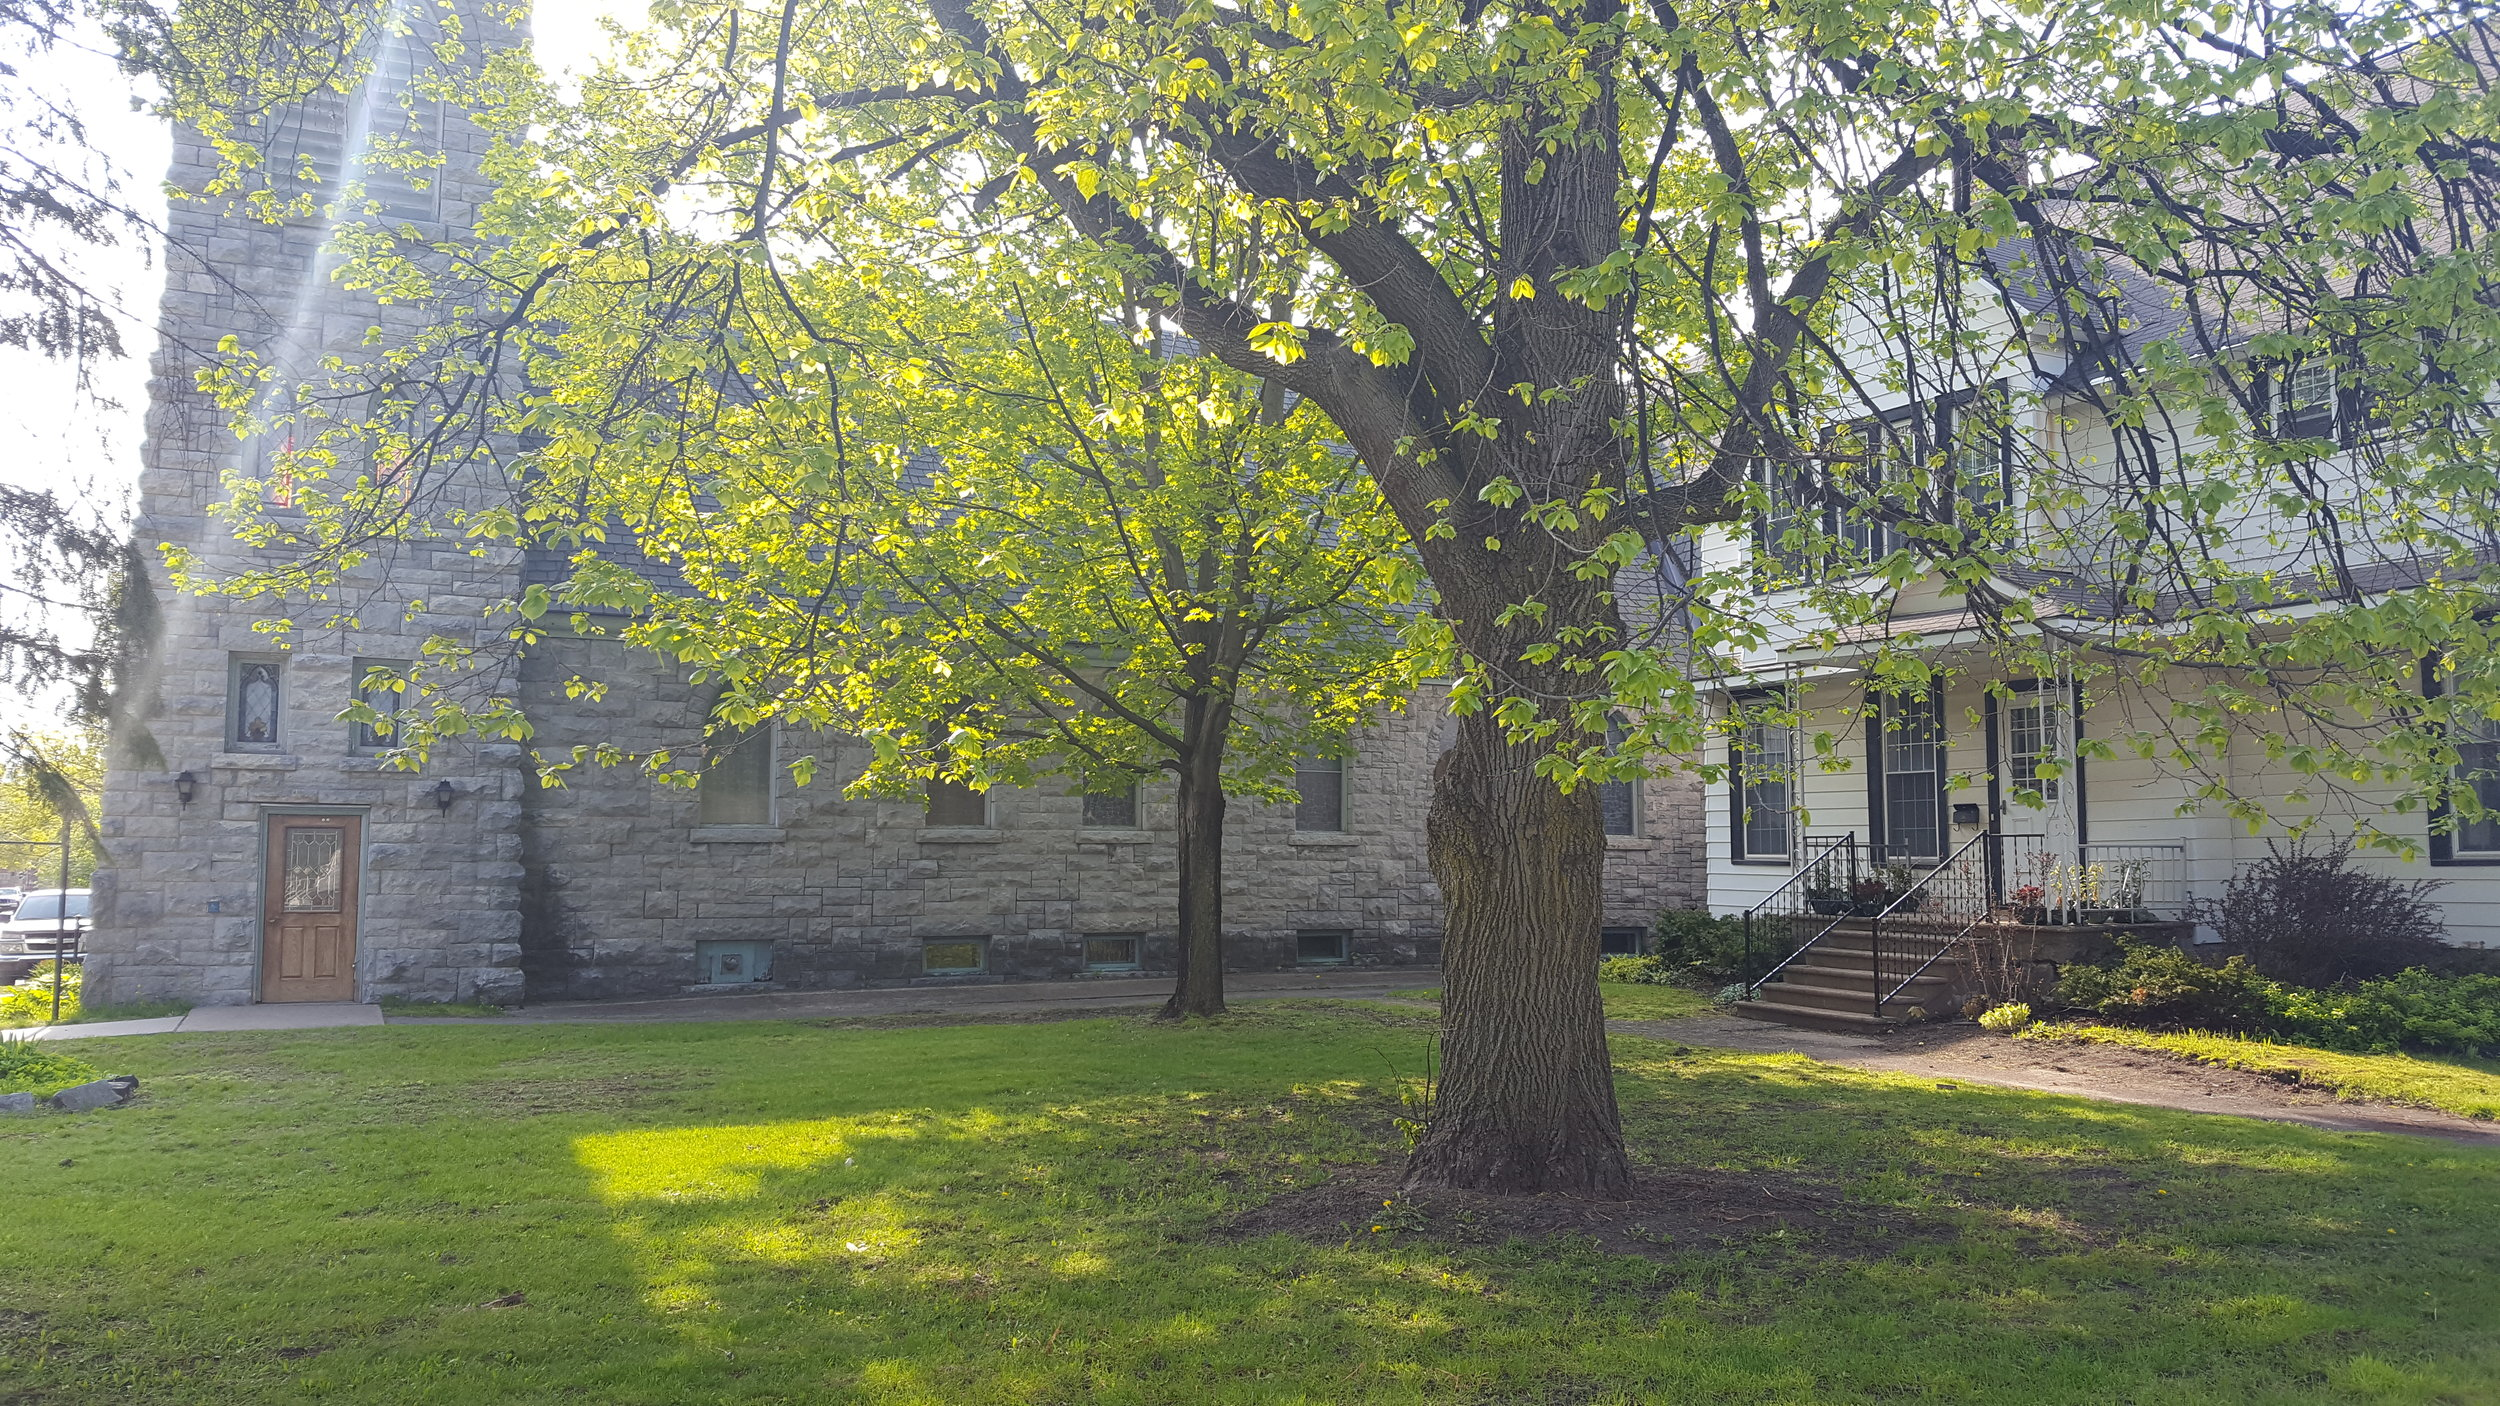 Grace House is located on E. Main St. in Canton, next door to Grace Episcopal Church.